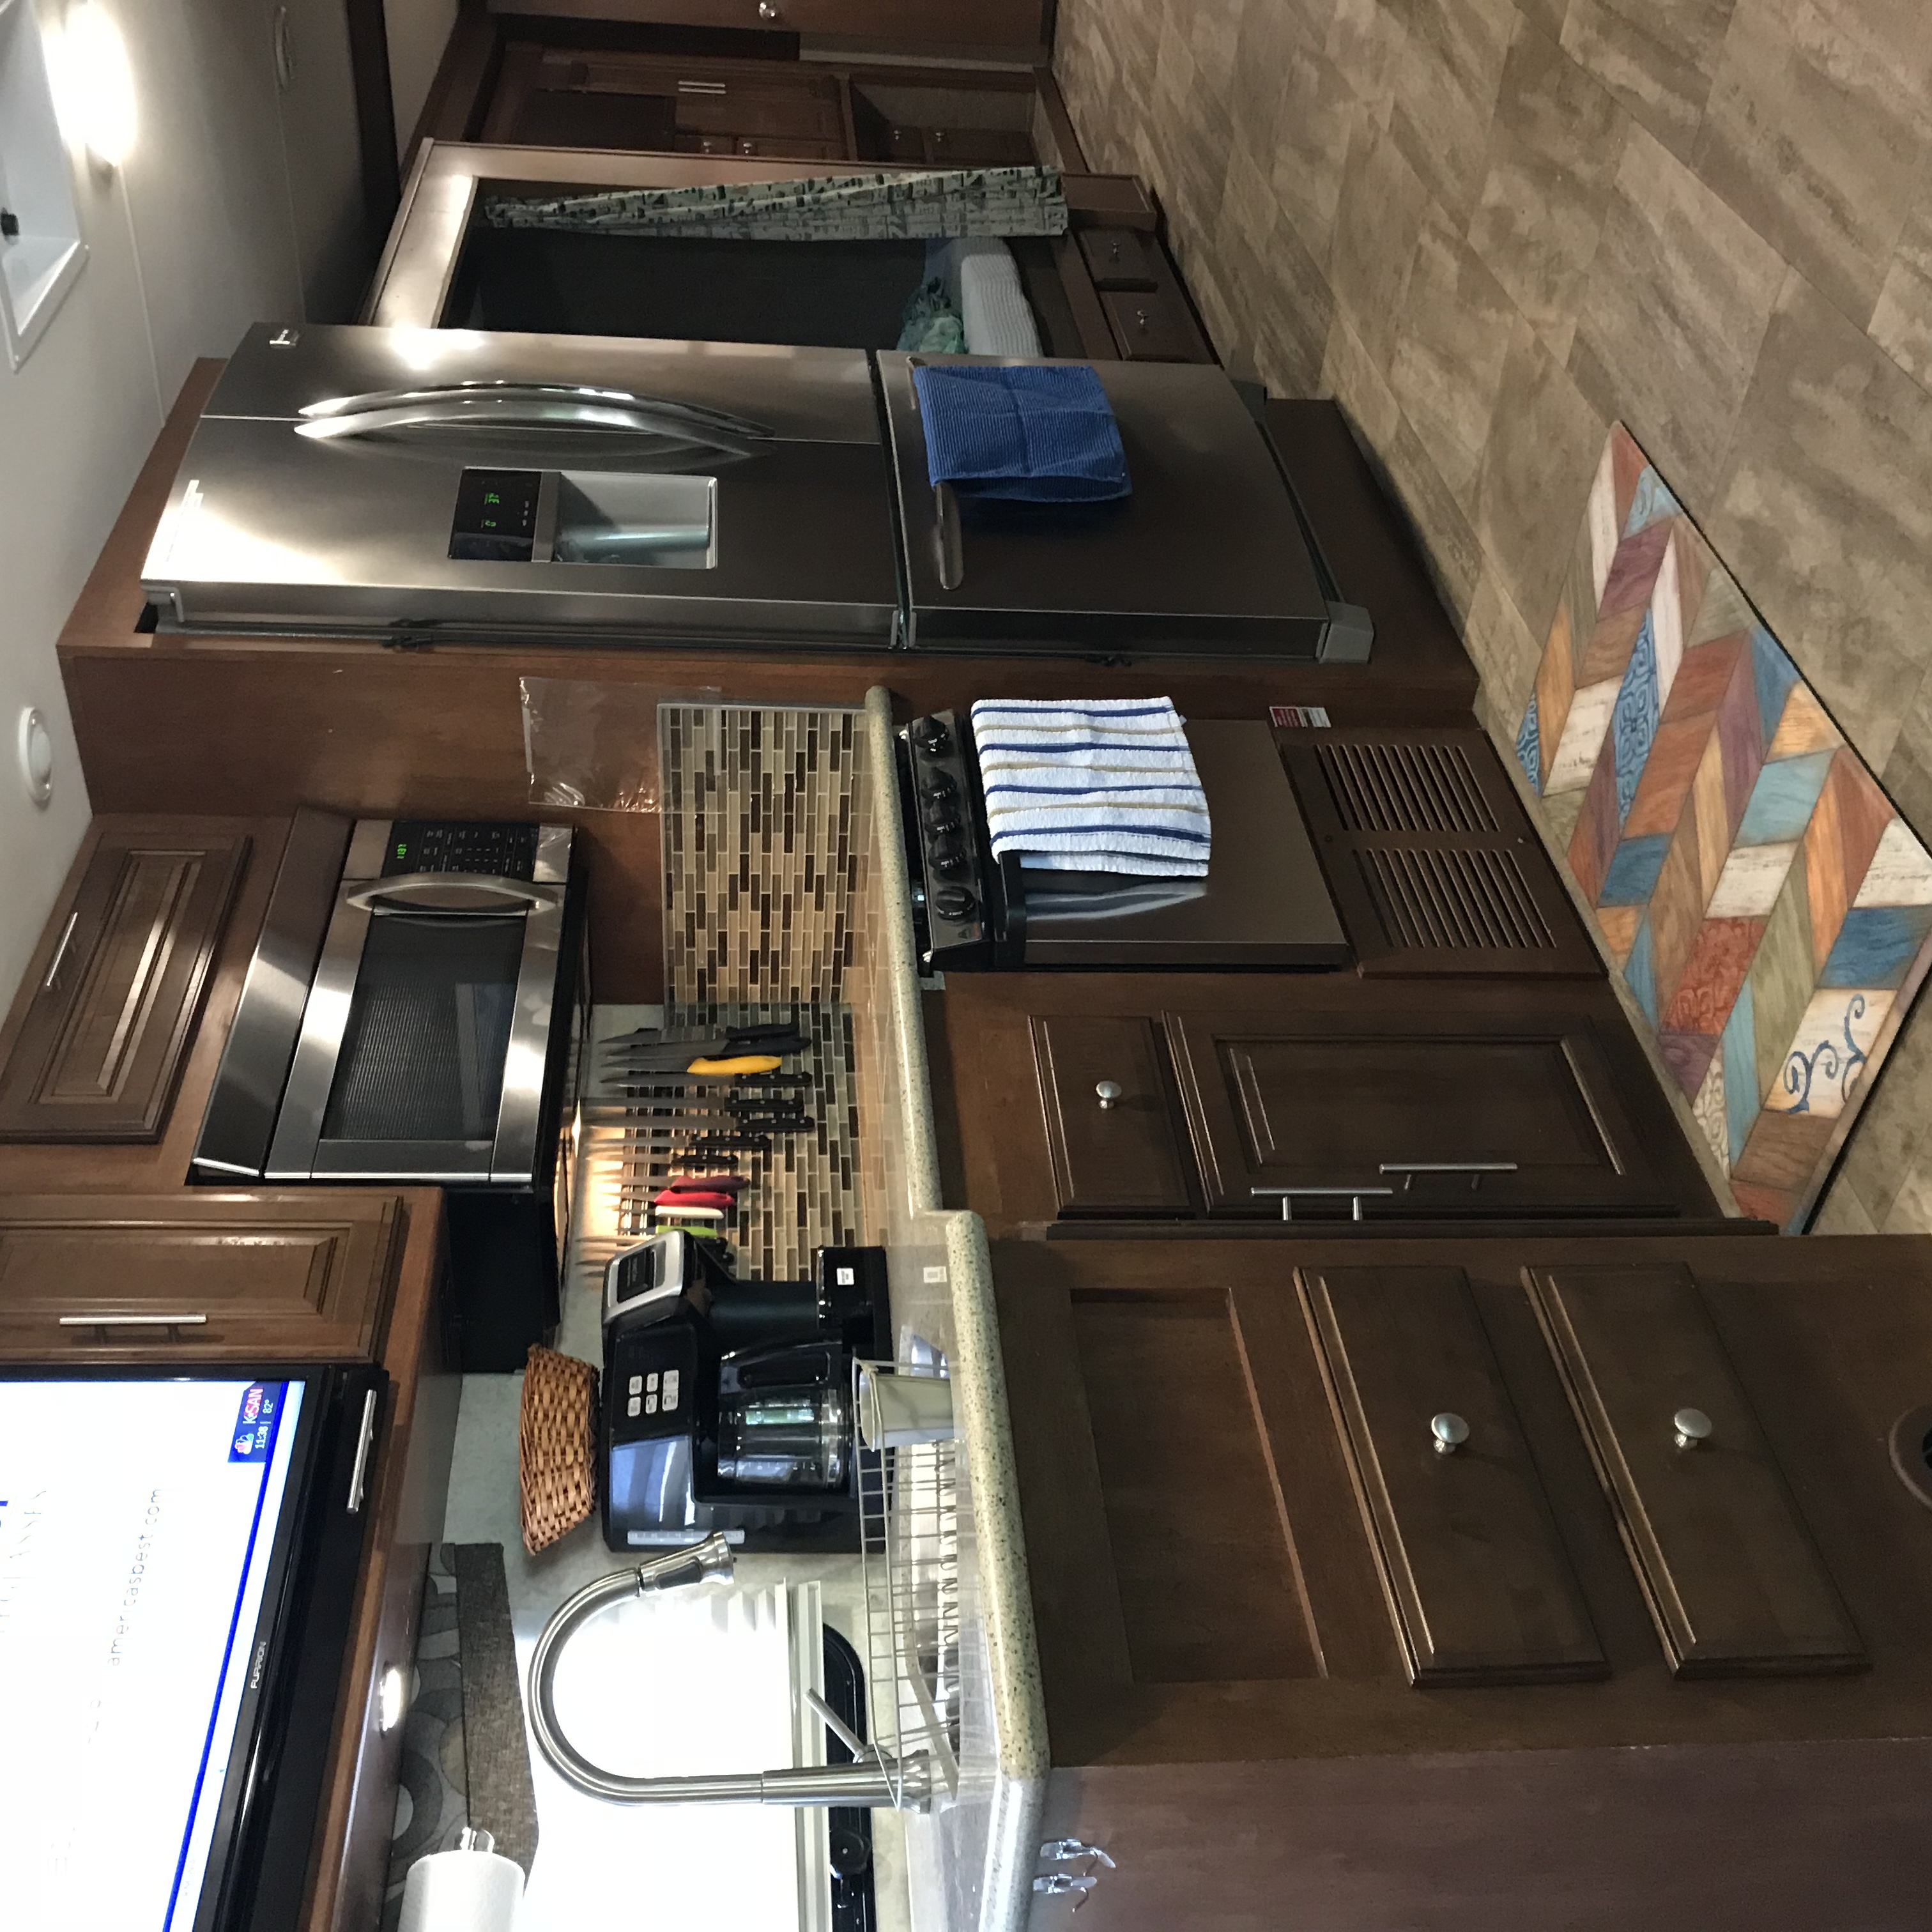 Kitchen area with all stainless steel appliances, 3-door fridge, stove, oven & microwave. Forest River Georgetown 2015